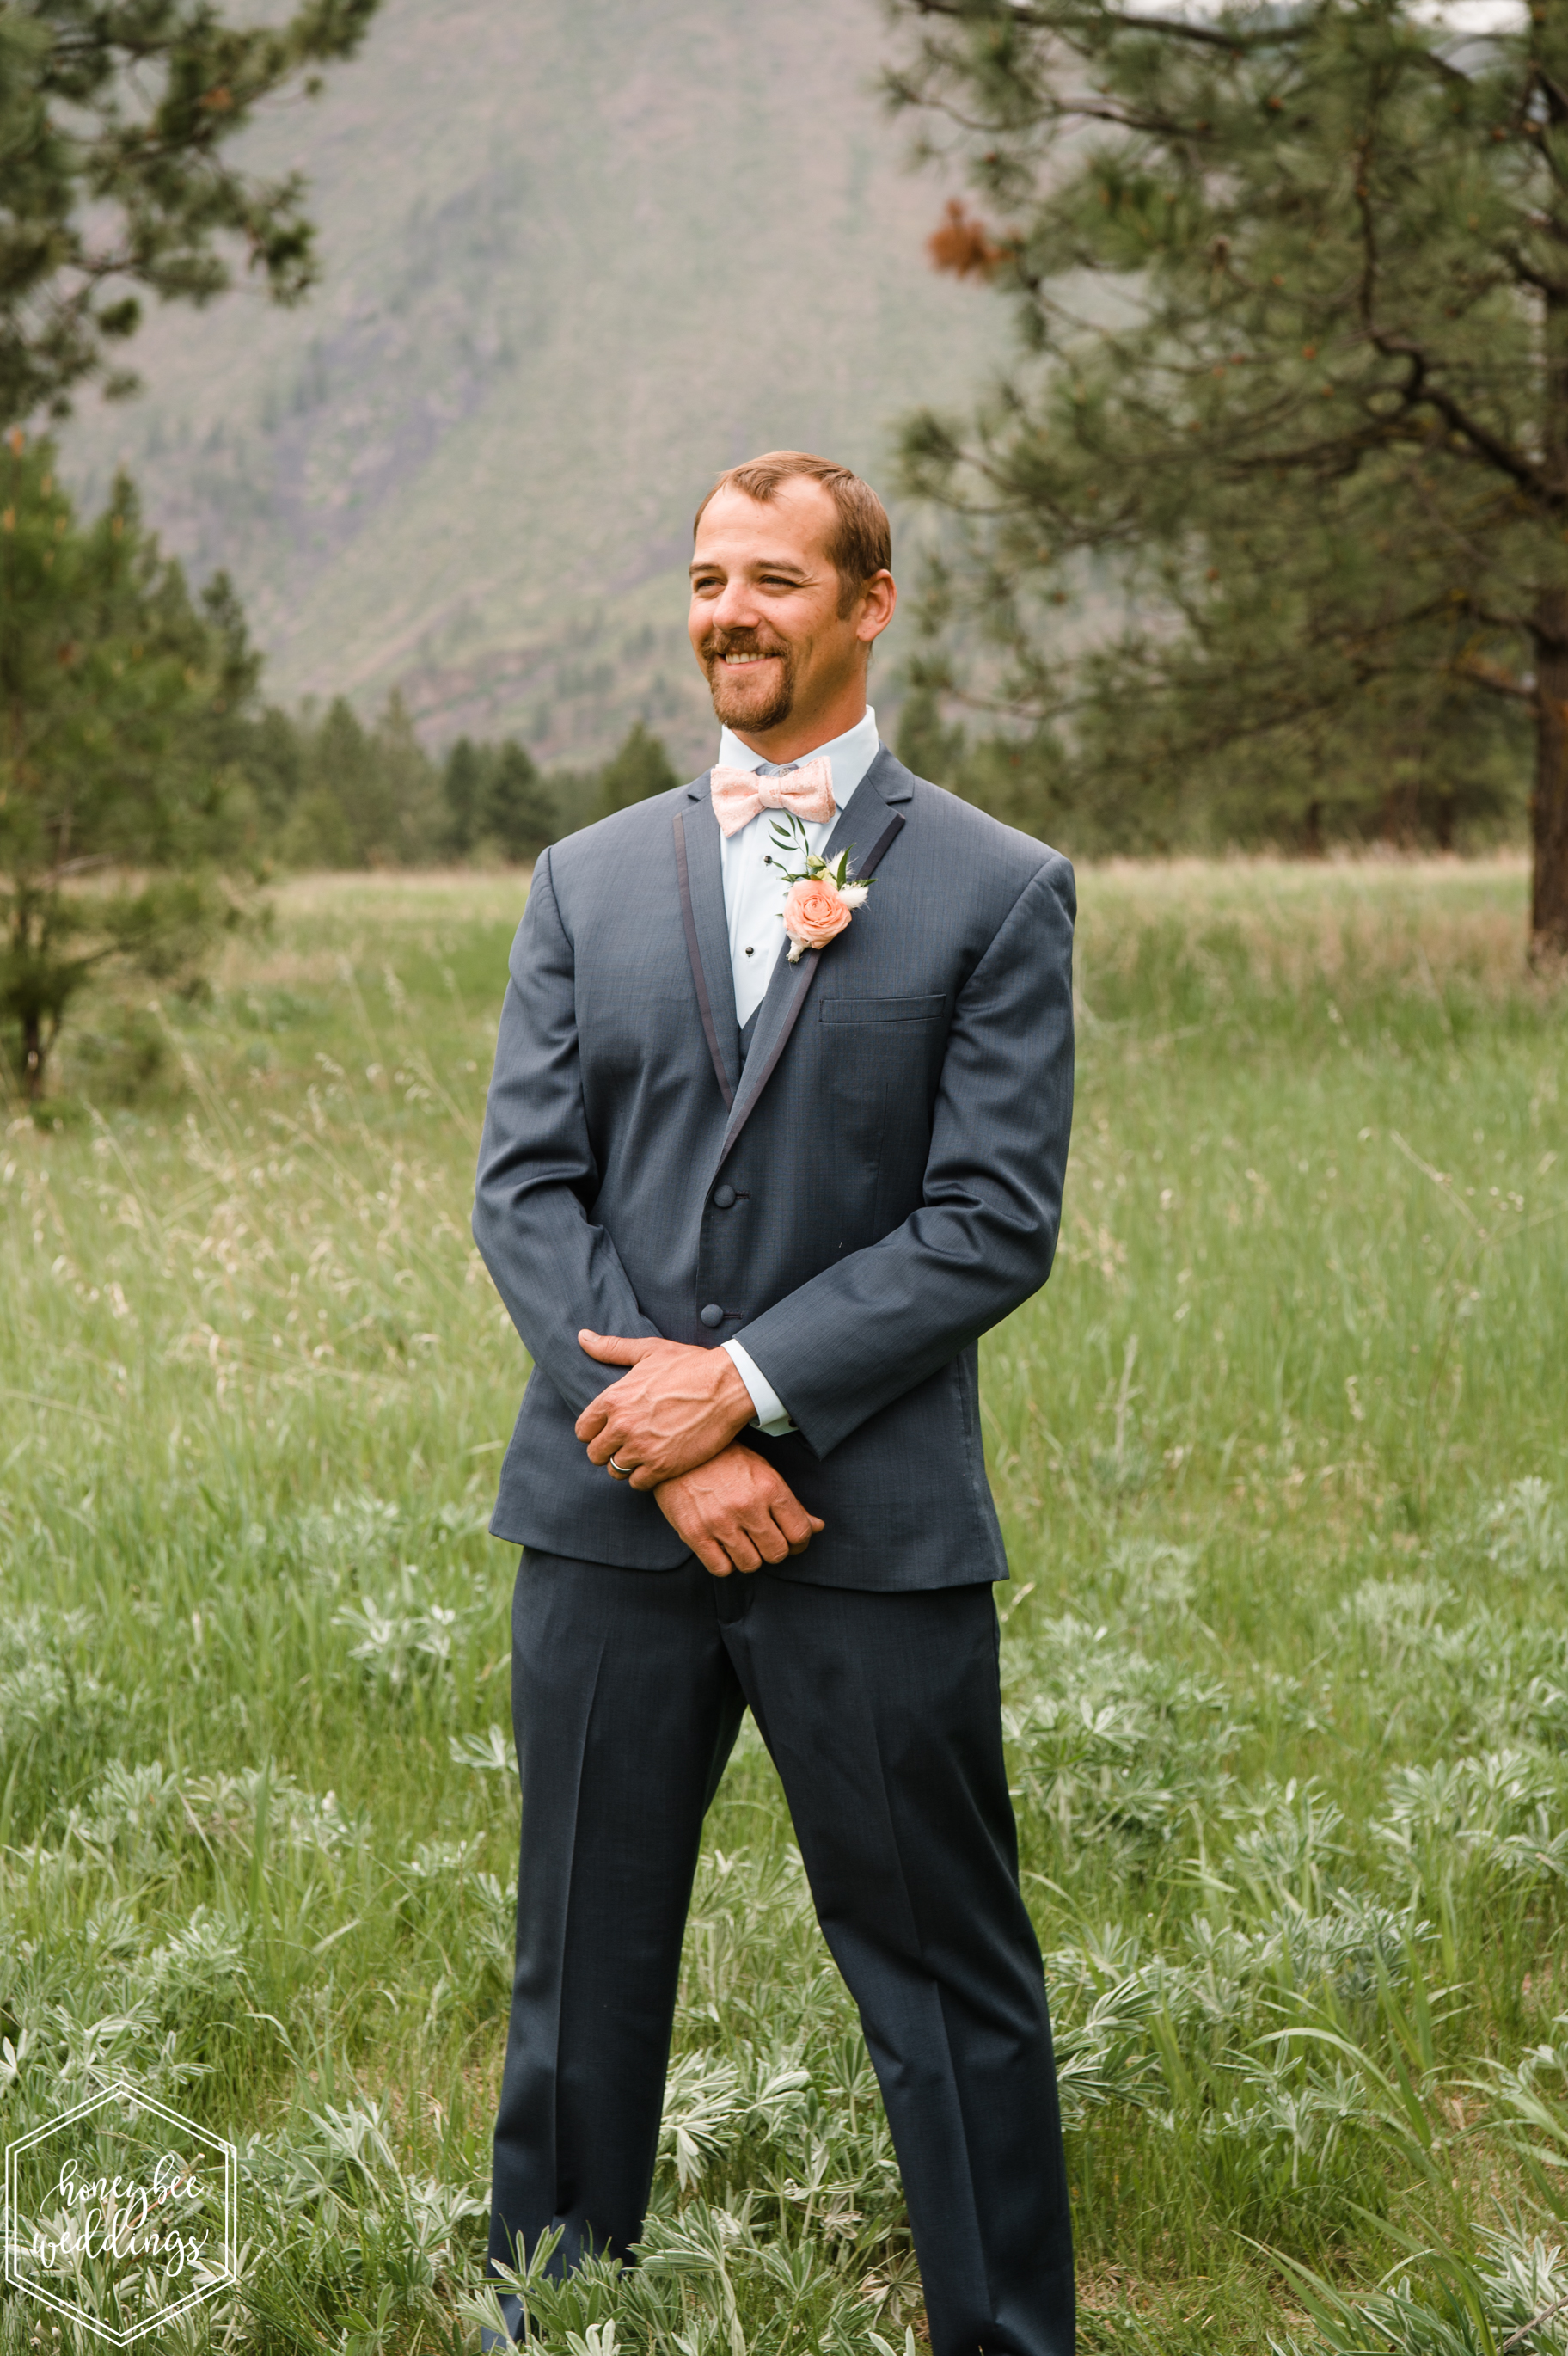 200Coral Mountain Wedding at White Raven_Honeybee Weddings_May 23, 2019-636.jpg